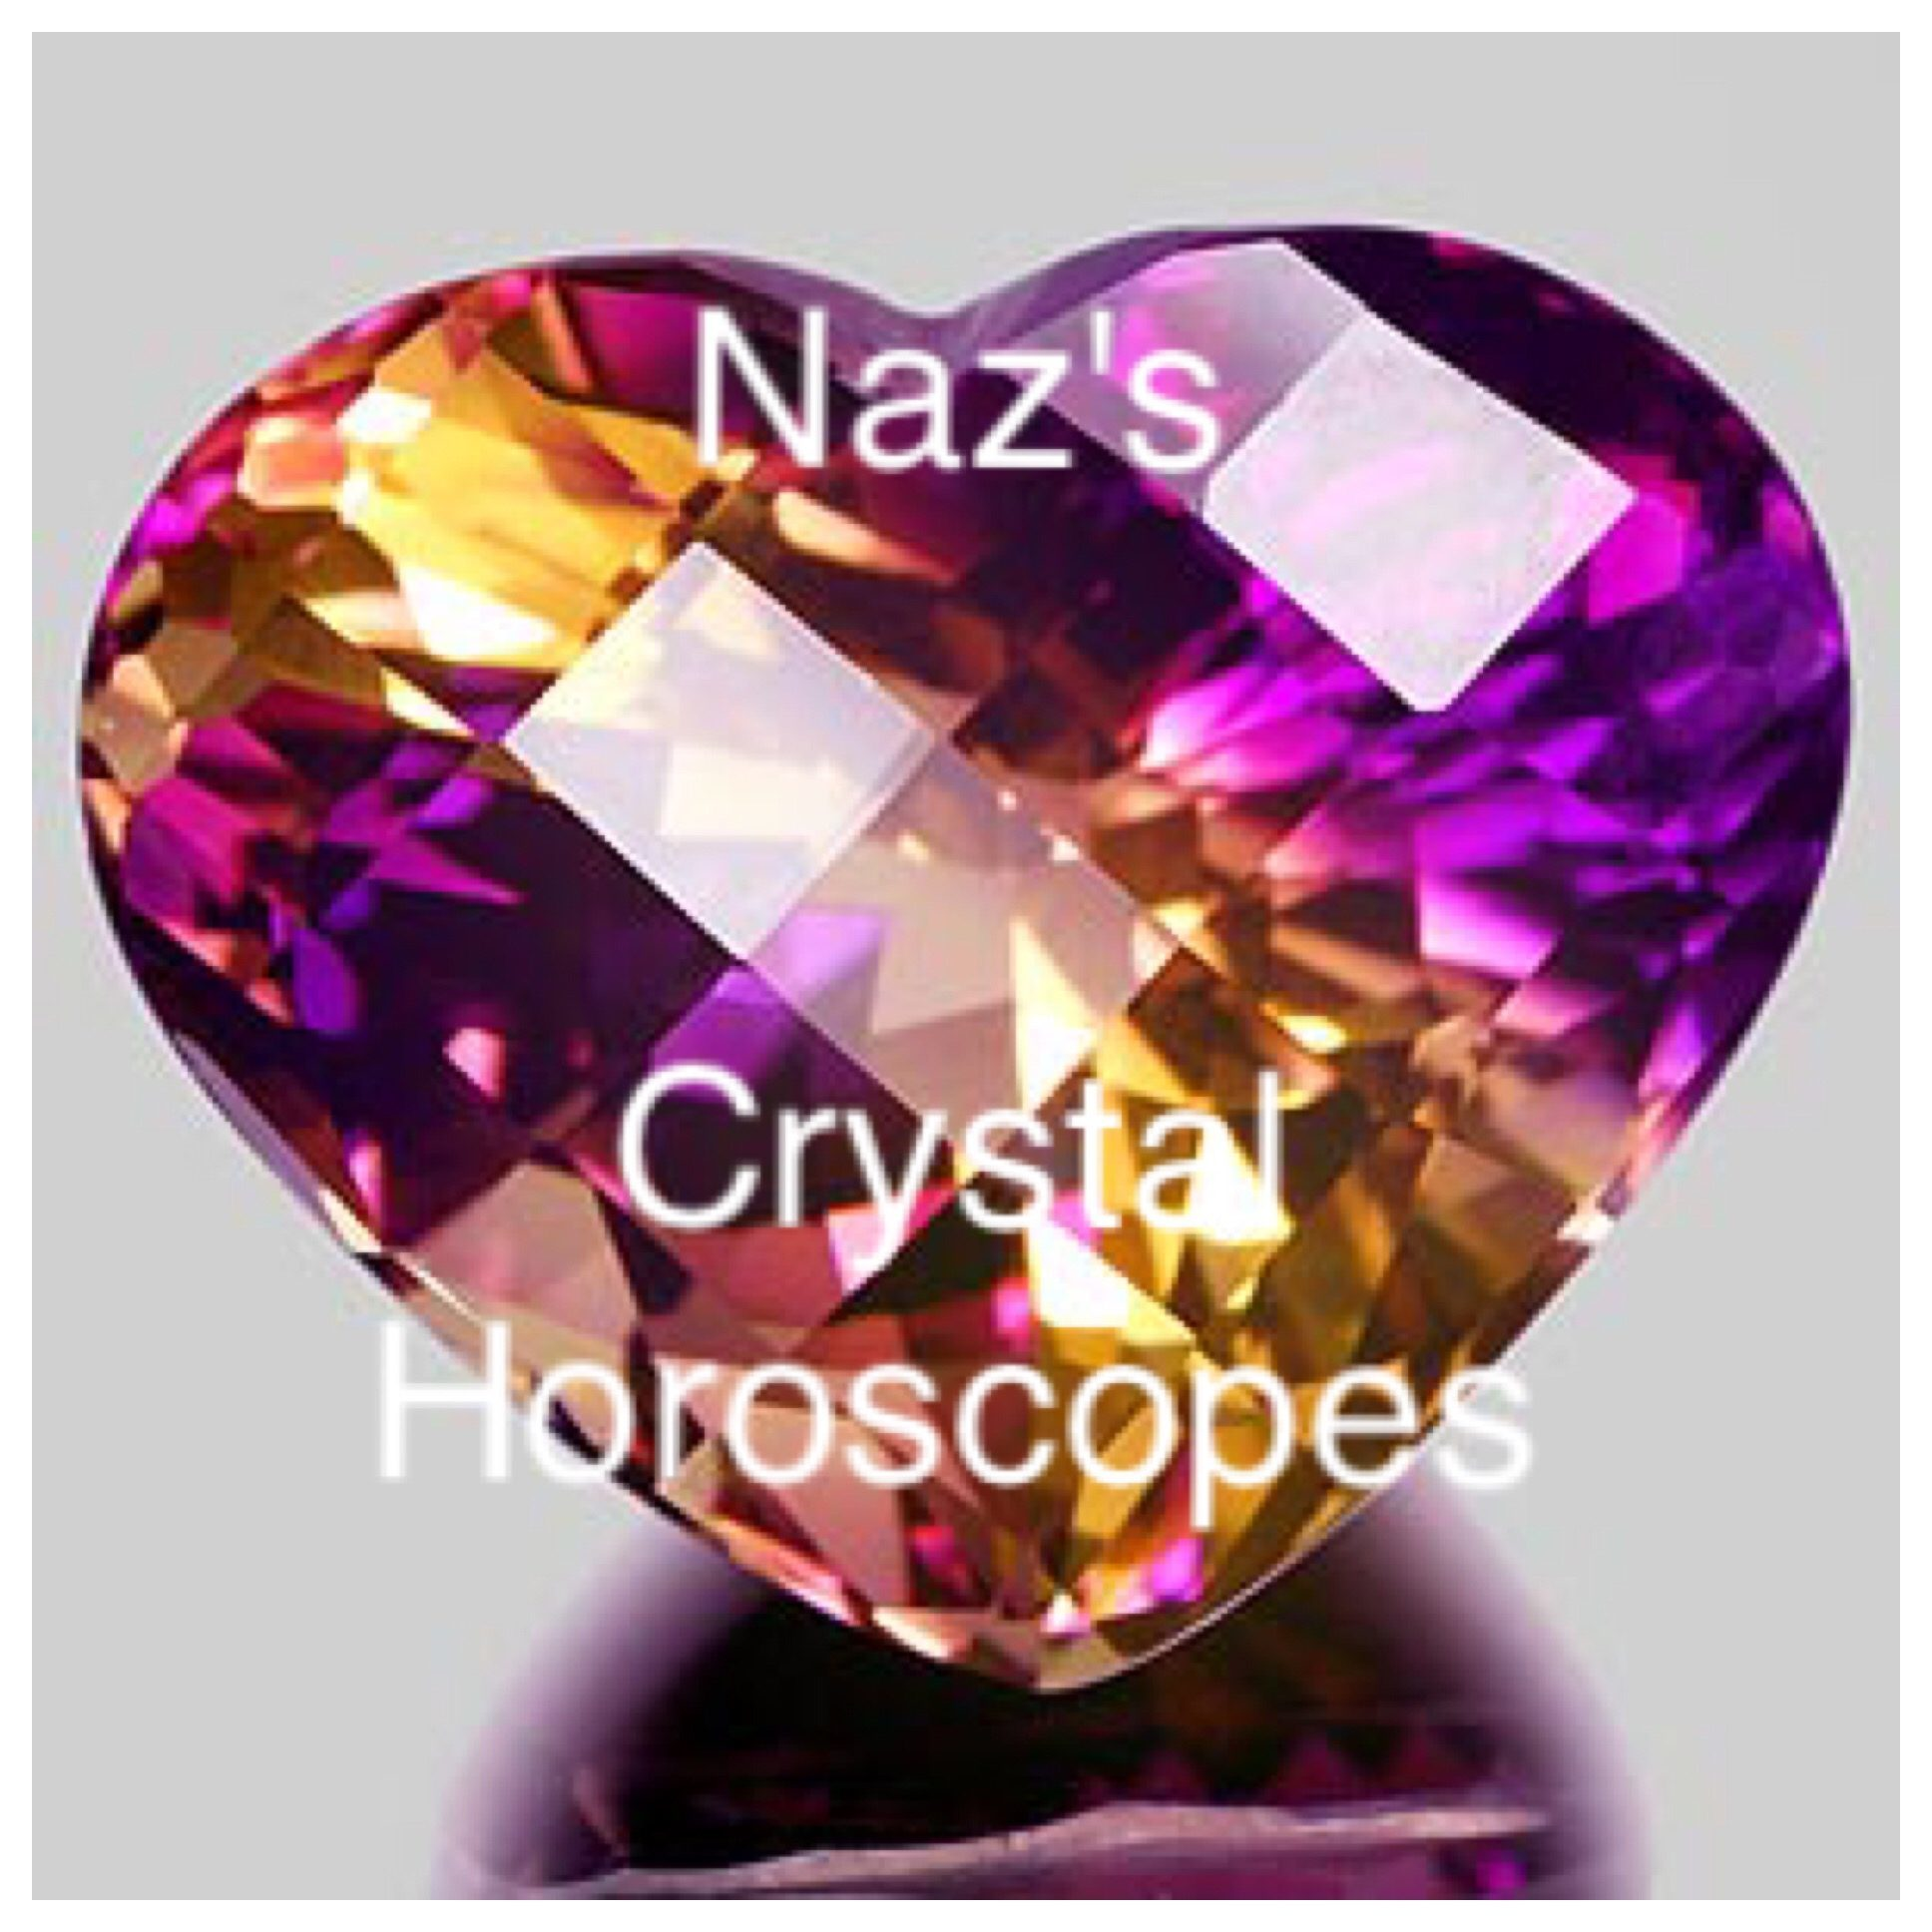 Naz's Crystal Horoscopes  10th - 16th December 2017